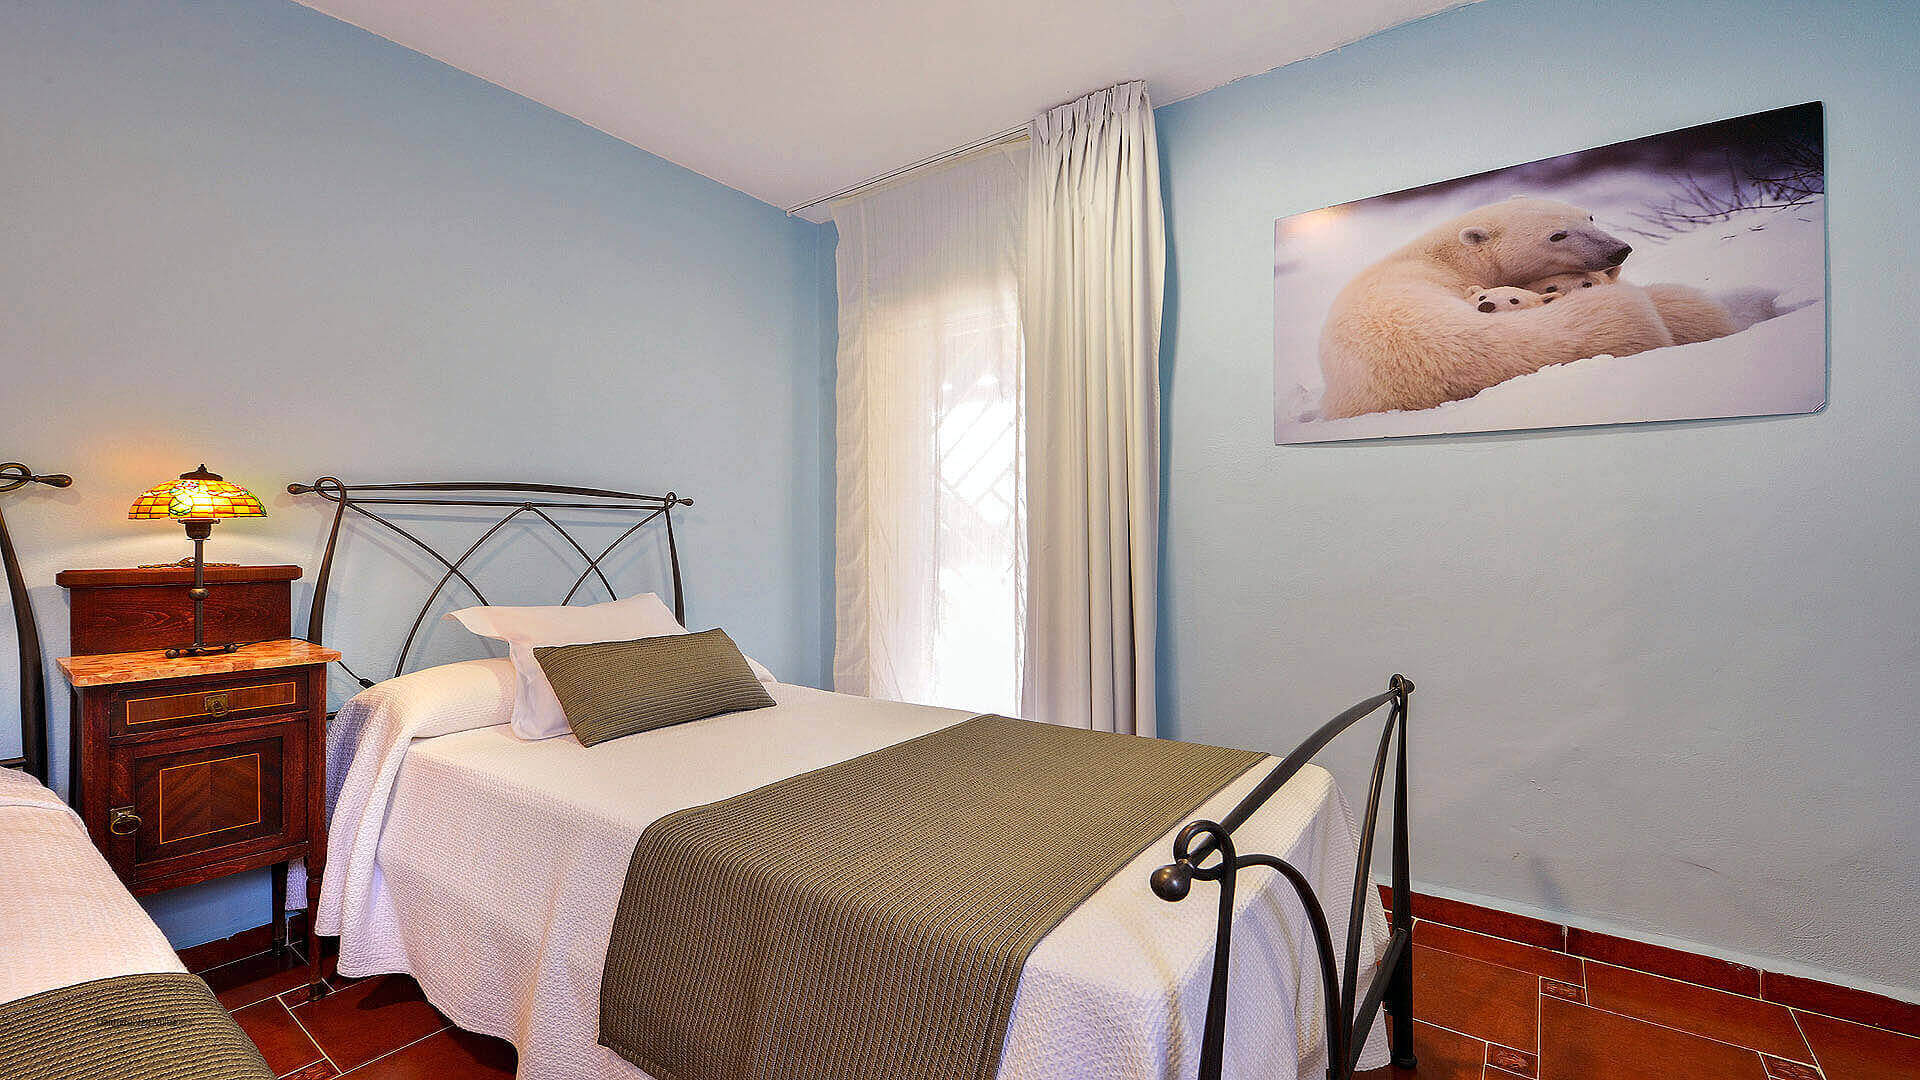 Cana Lucia Ibiza 41 Bedroom 5